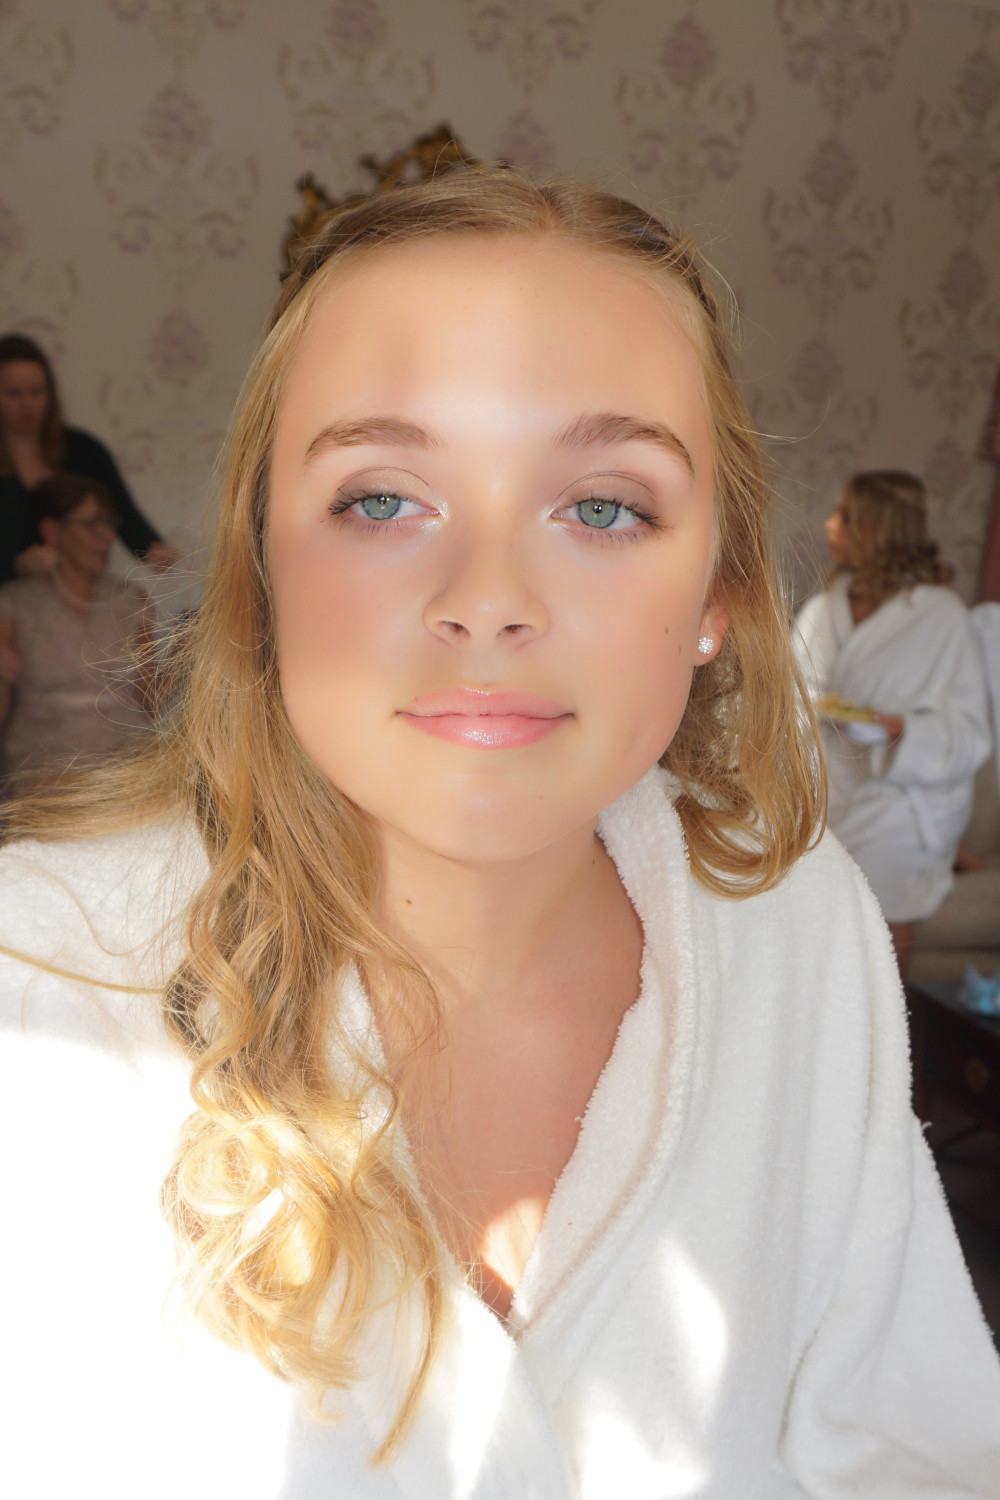 bridesmaids fresh faced and dewy - Make Me Bridal Artist: The studio effect . Photography by: abbie Wiggins. #glamorous #freshfaced #freshmakeup